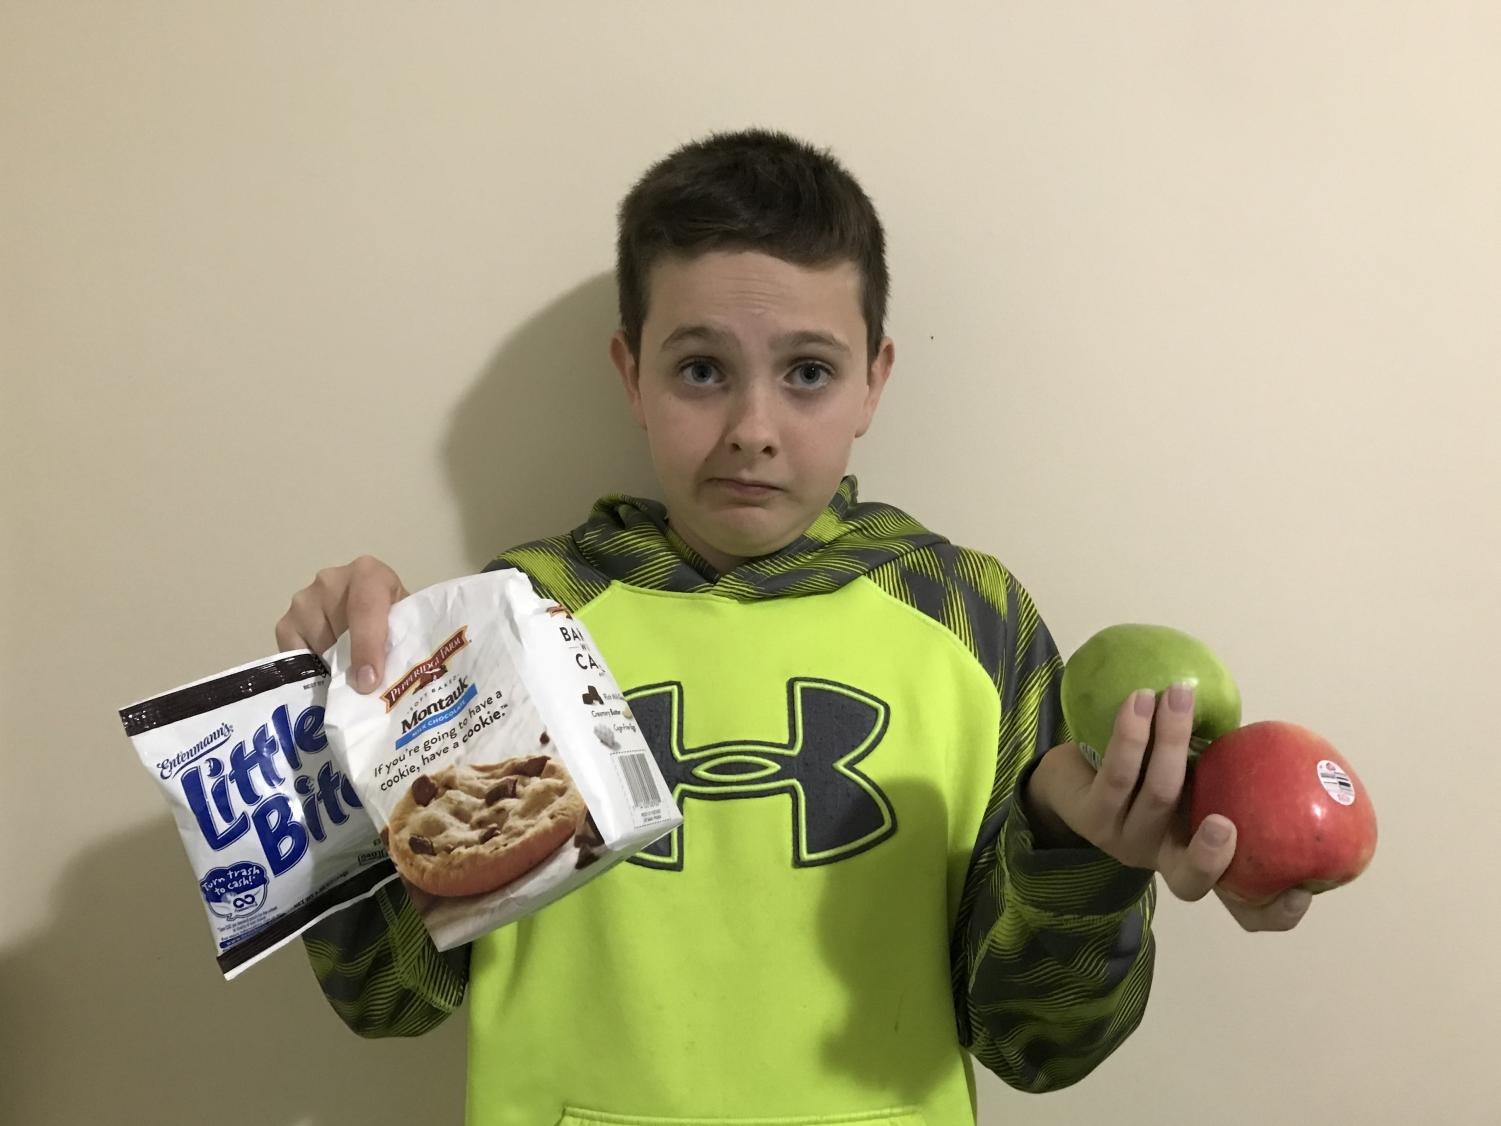 Student has trouble deciding if he should have a healthy snack or not